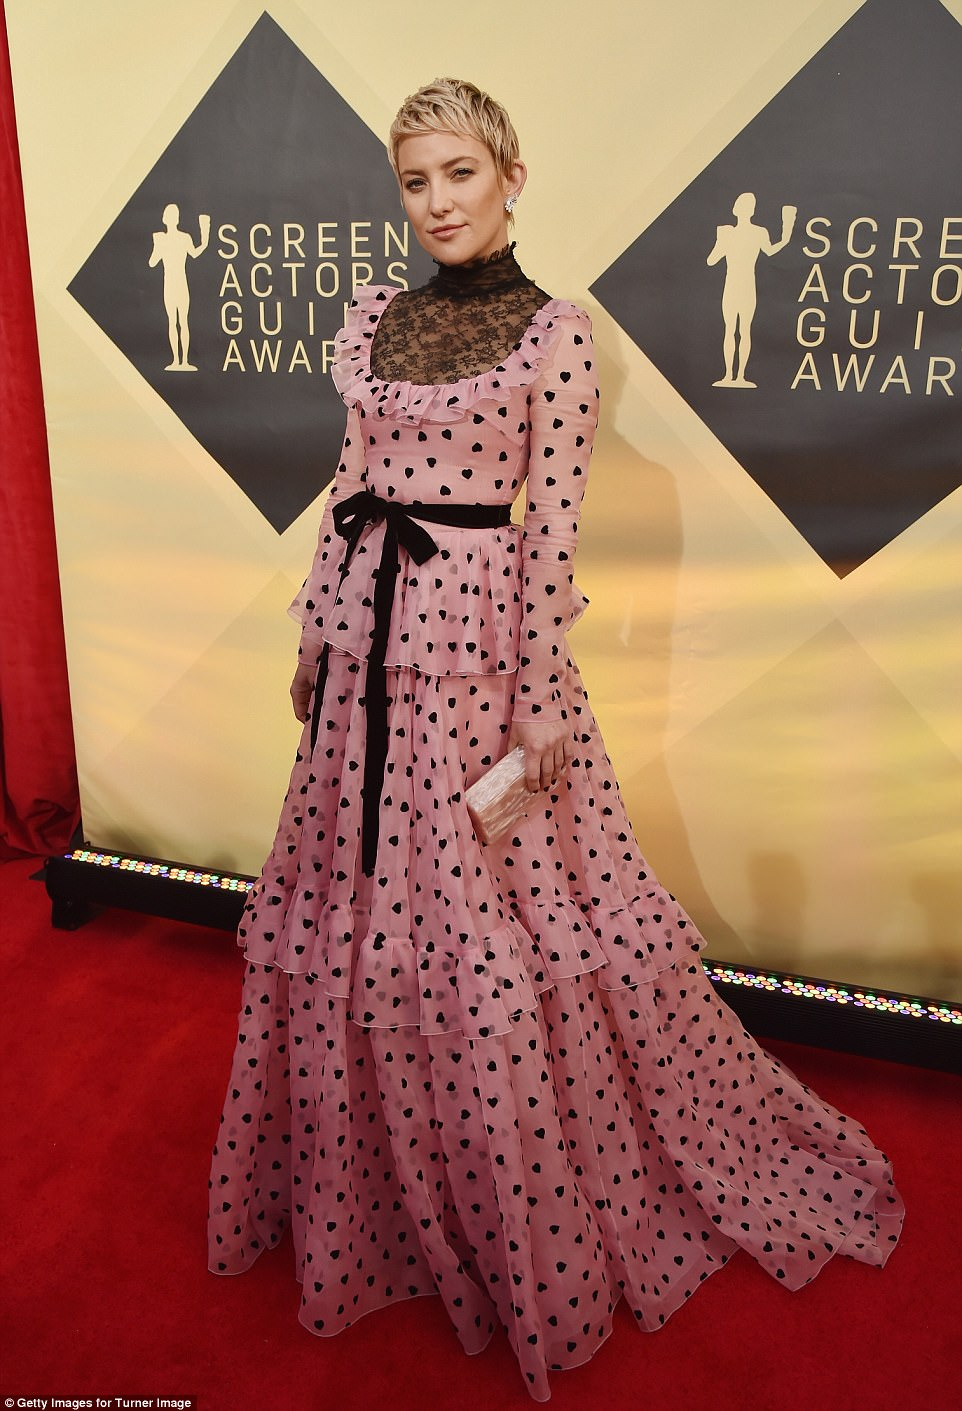 486D332A00000578-0-Topping_the_list_Kate_Hudson_s_bright_pink_gown_had_social_media-a-66_1516581730419